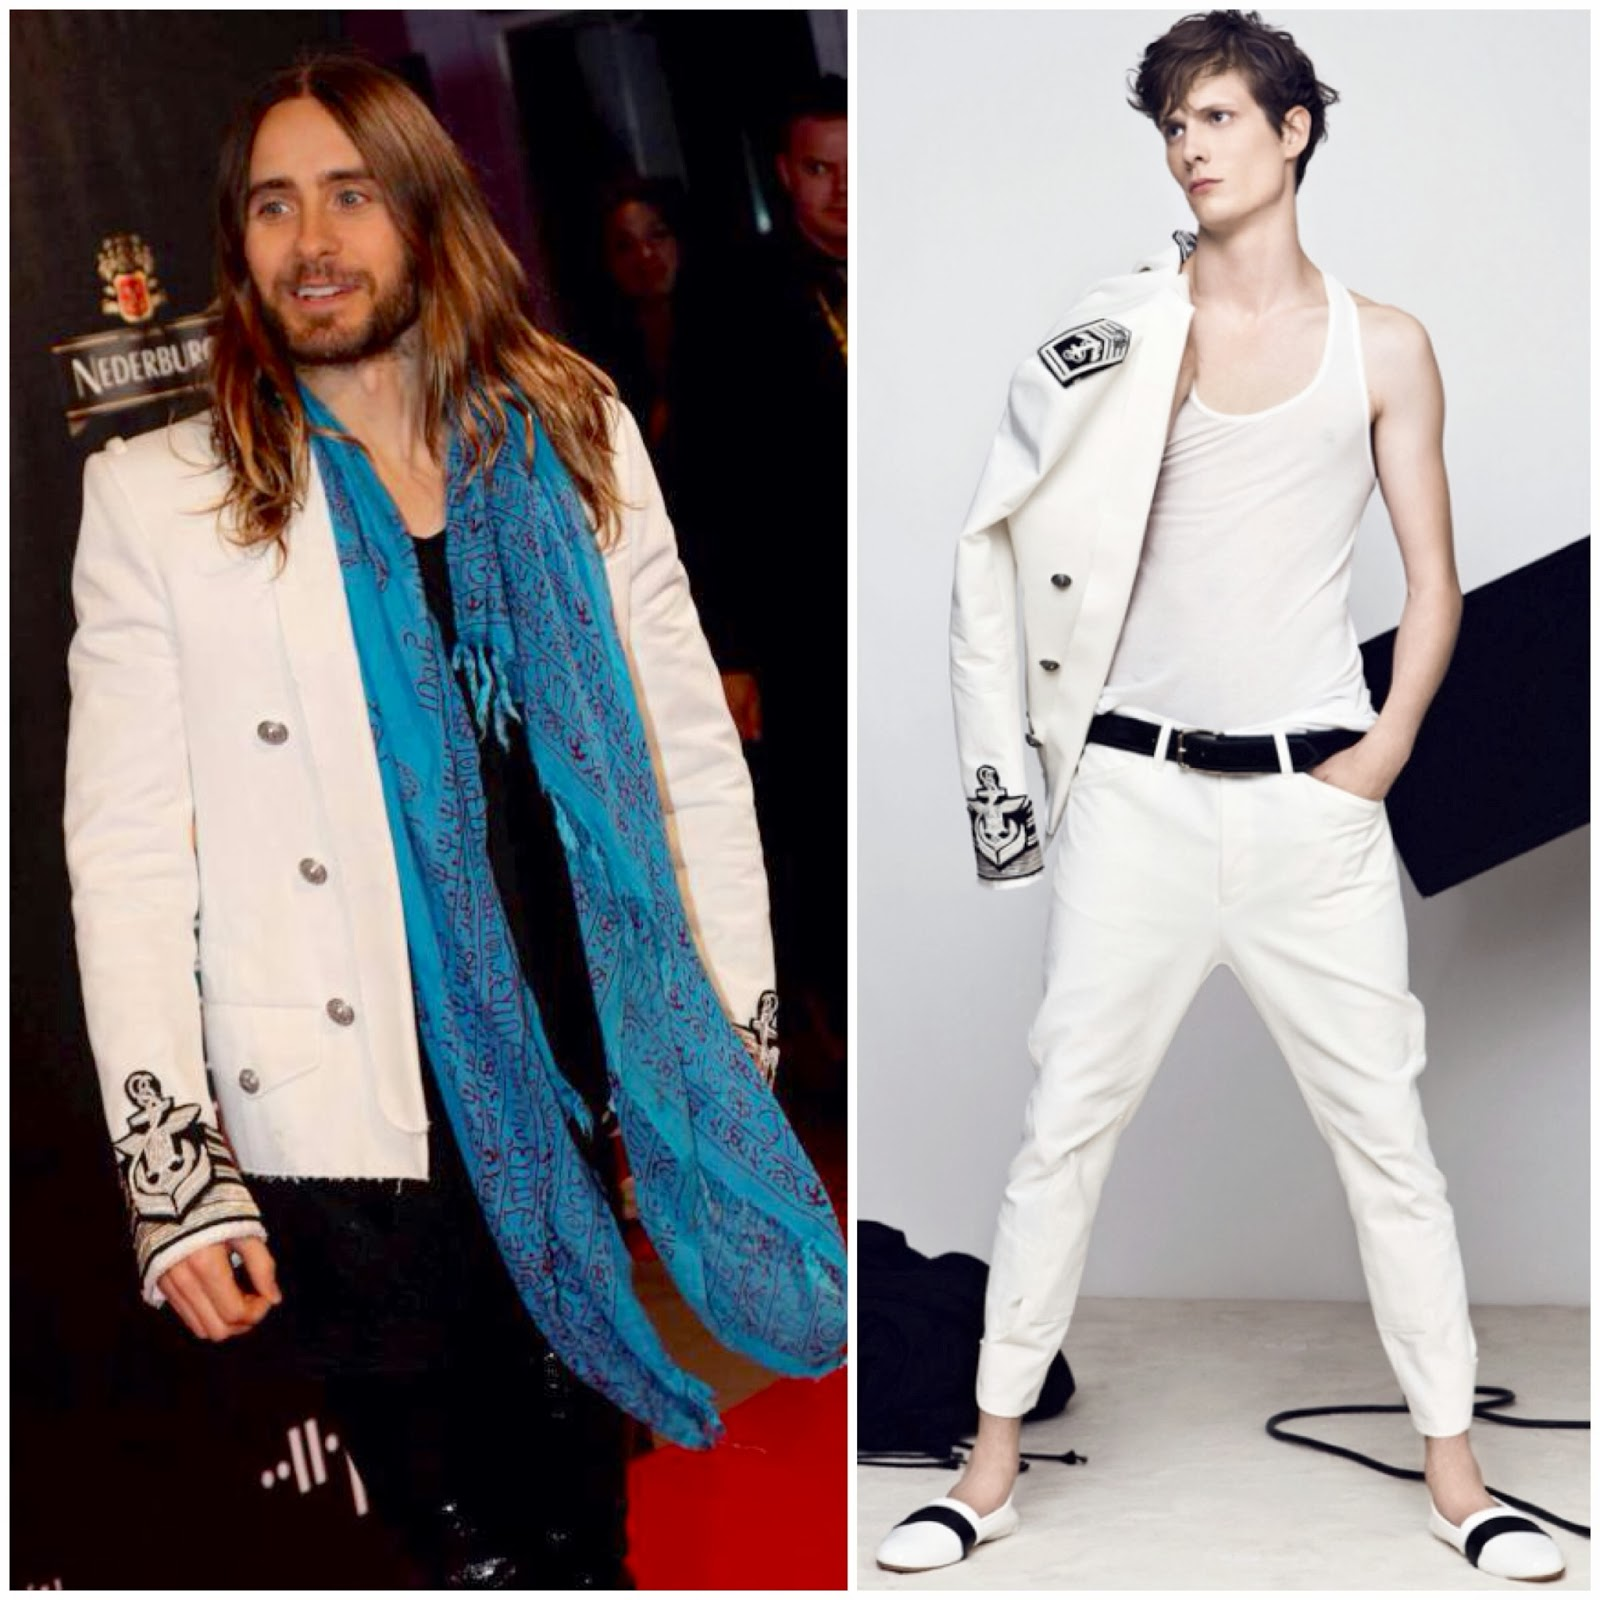 Jared Leto in Balmain - 30 Seconds To Mars Appearance in Helsinki